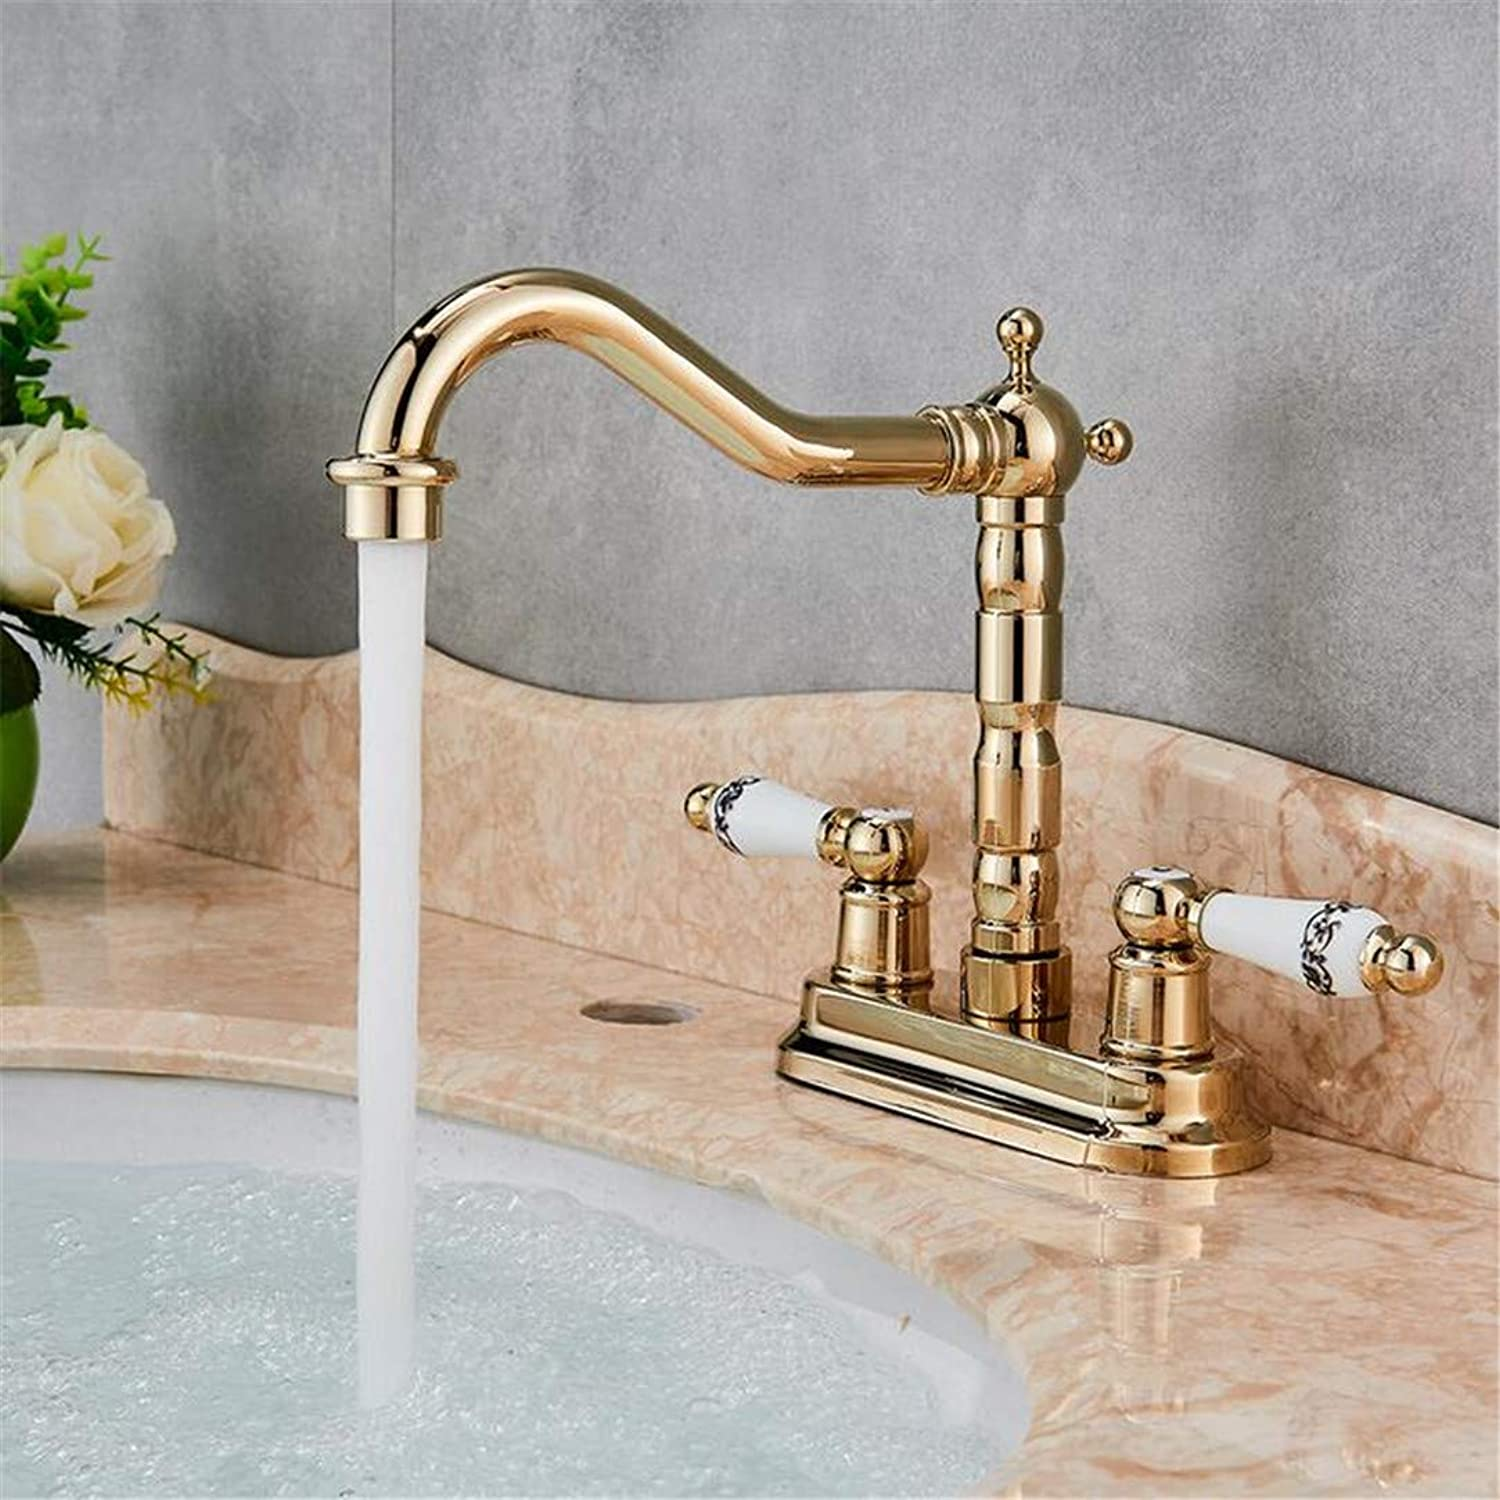 Faucet Washbasin Mixer Dual Handle Swivel Bathroom Kitchen Sink Faucet Antique Brass golden Polish Mixer Tap with Hot and Cold Water Deck Mounted